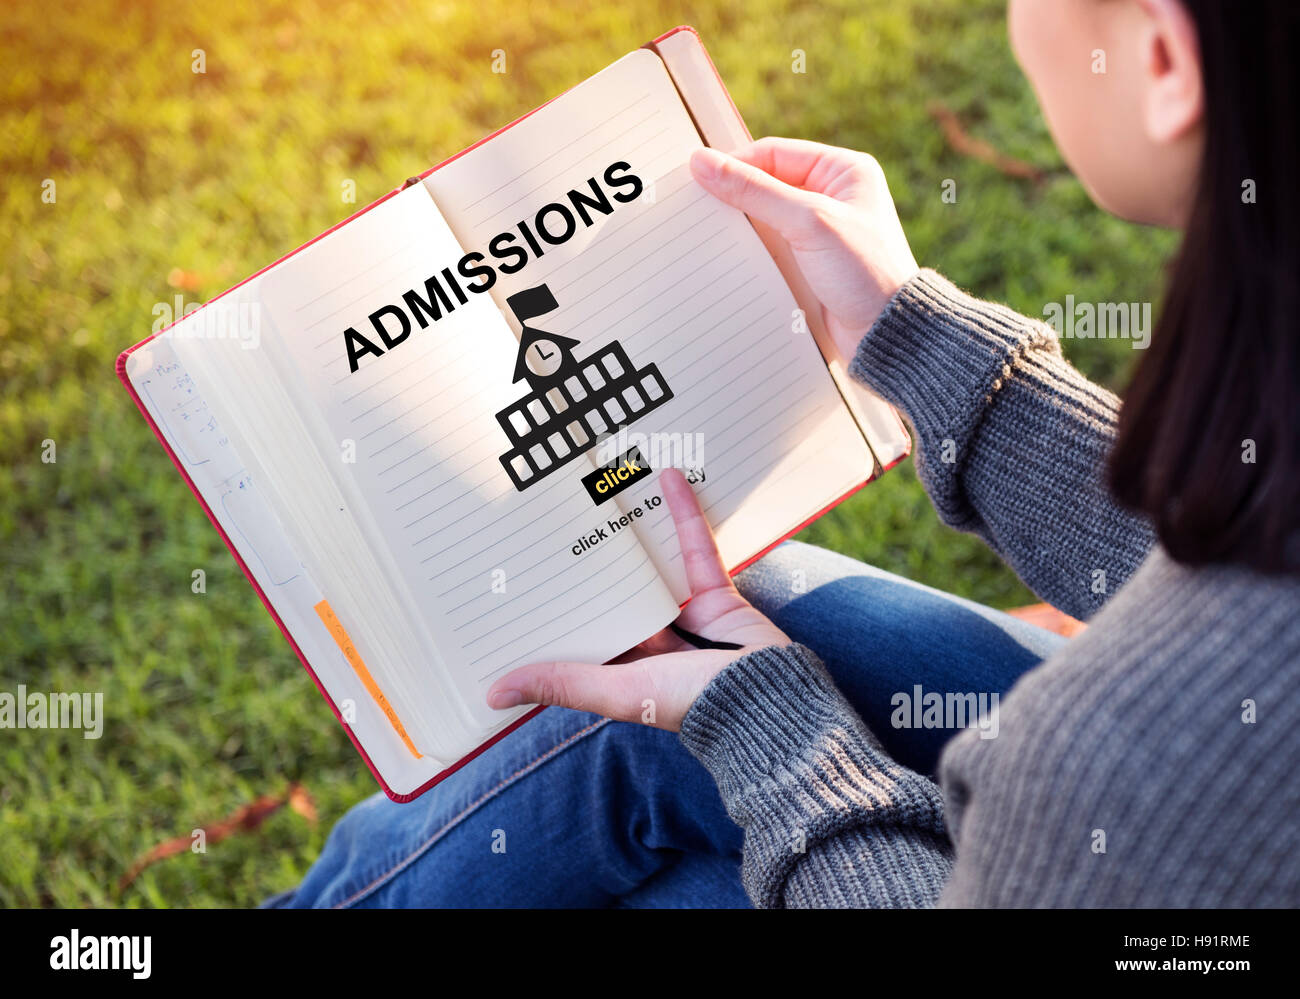 Admissions Education Knowledge University Academic Concept - Stock Image